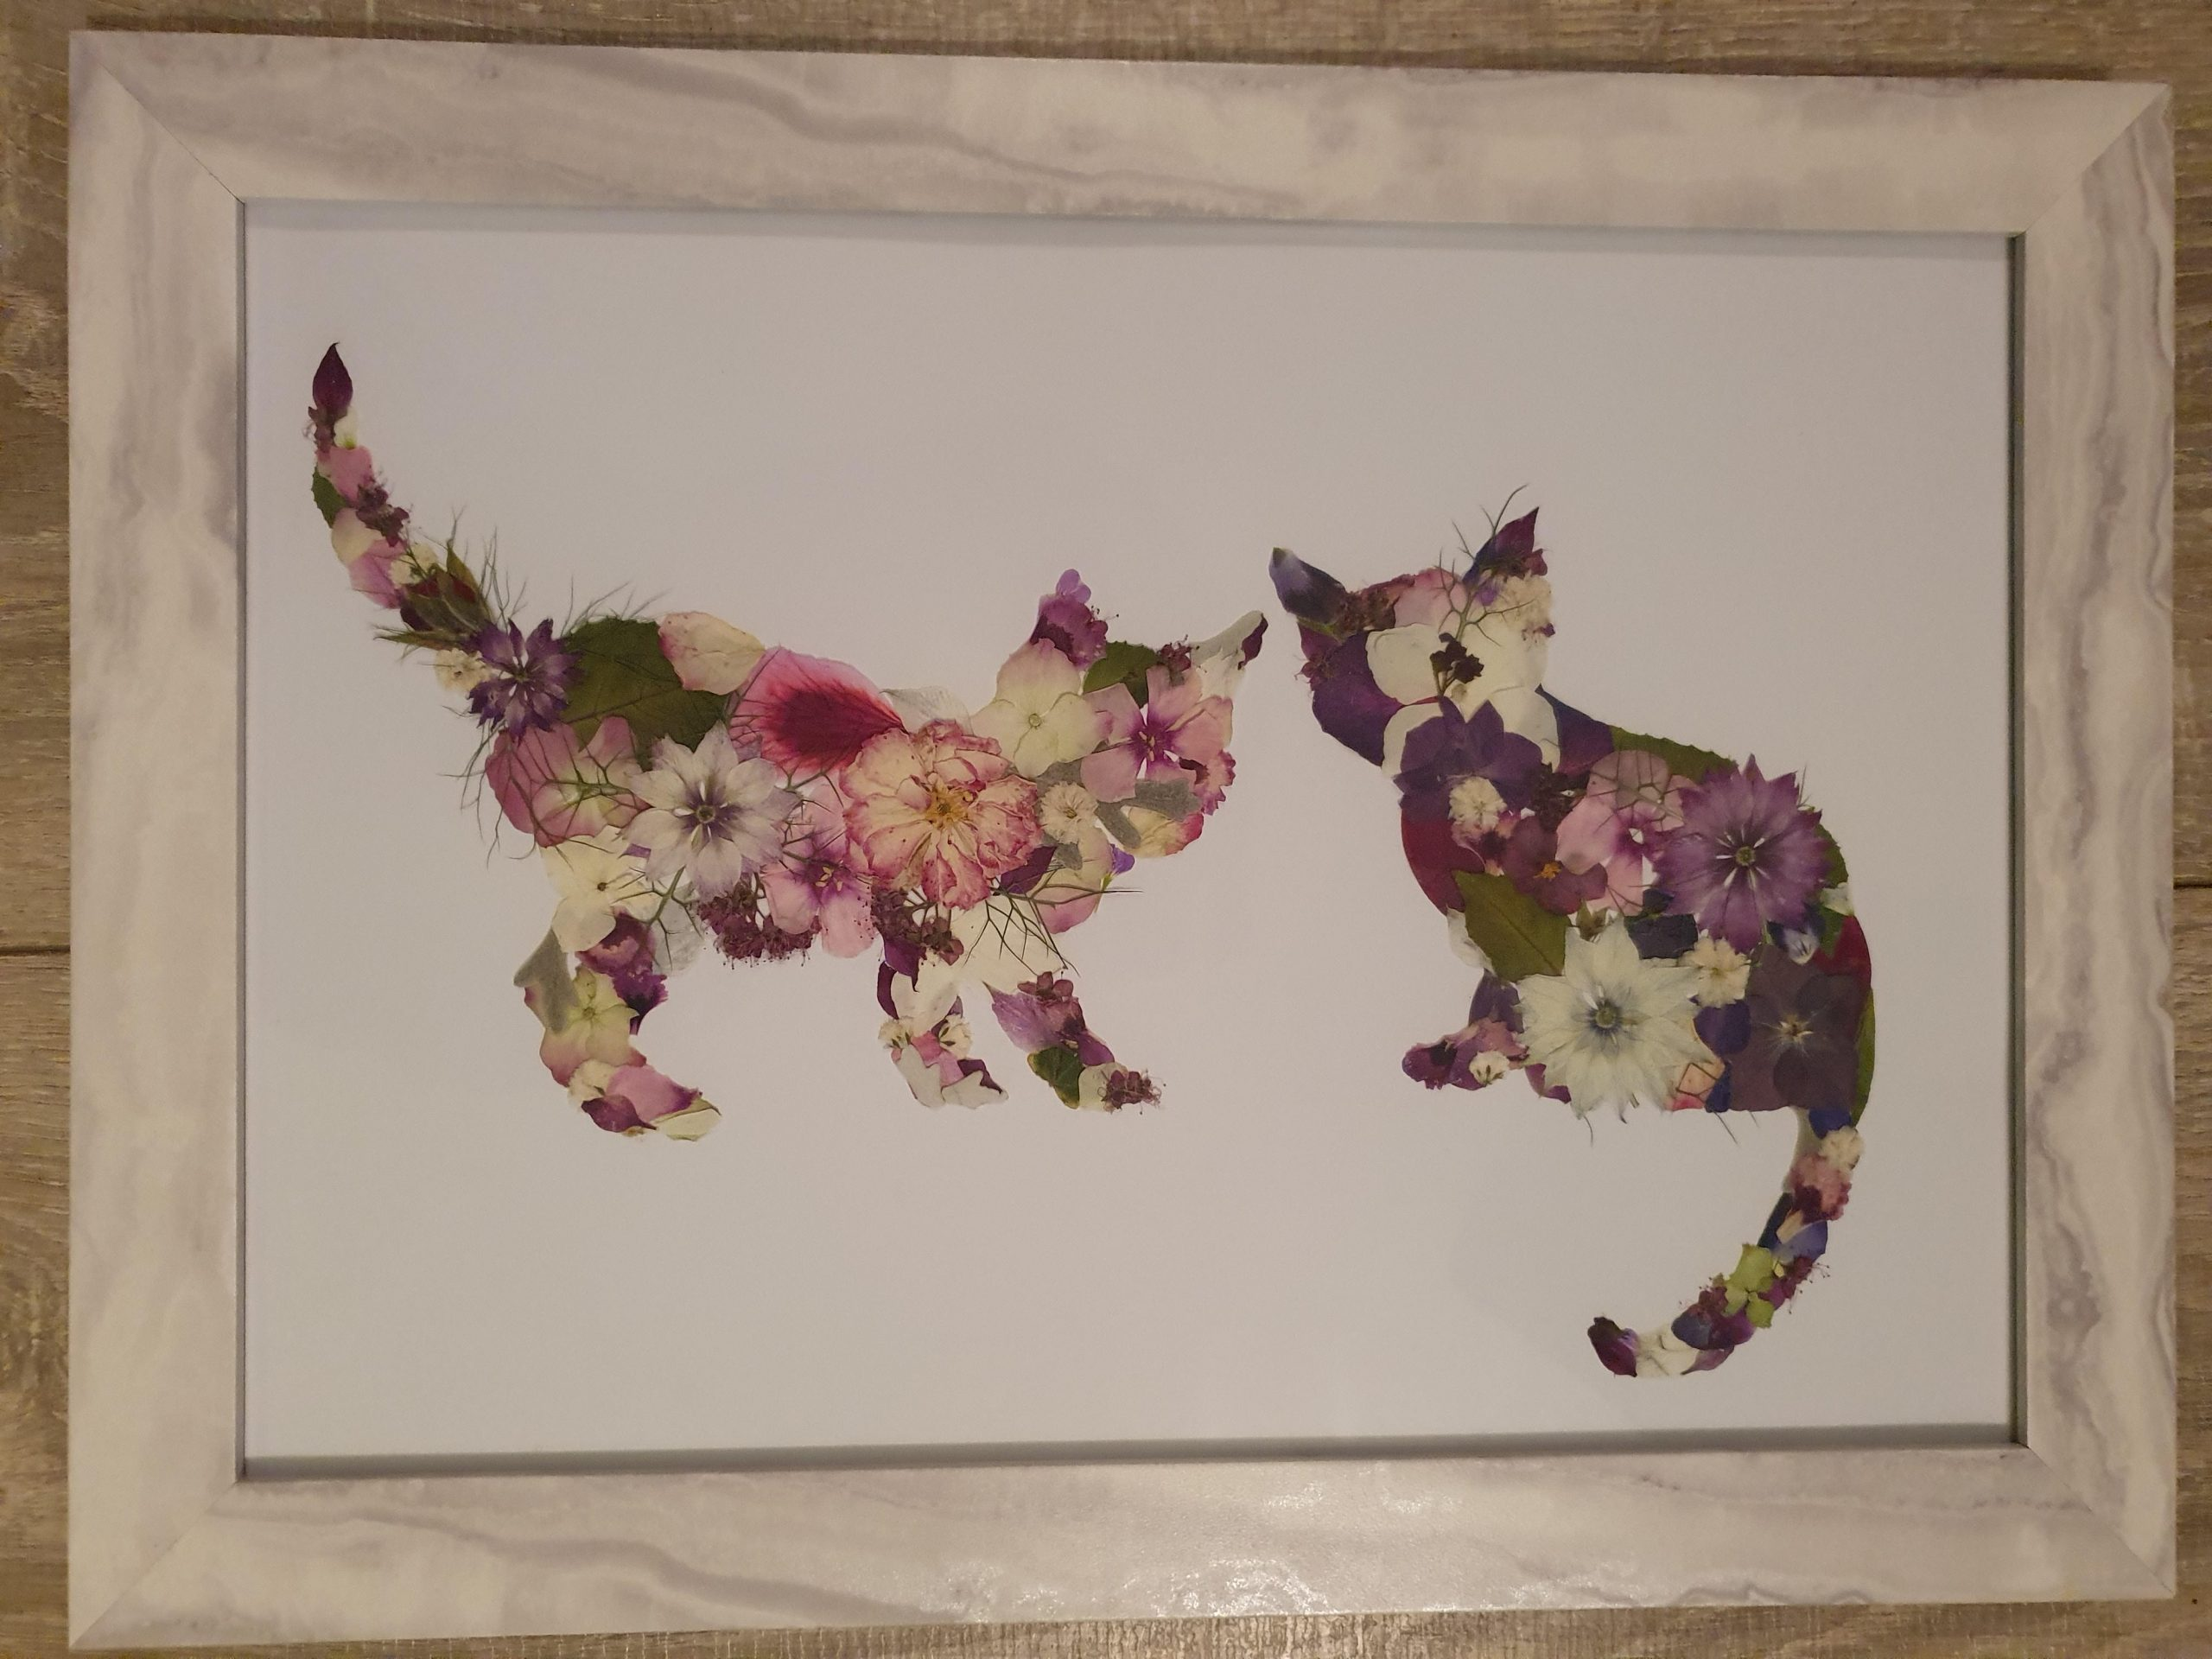 5u4wwvfxm6m51 scaled - My husband recently posted a picture of a flowery cat I made. This is my latest piece. - hobbies, crafts